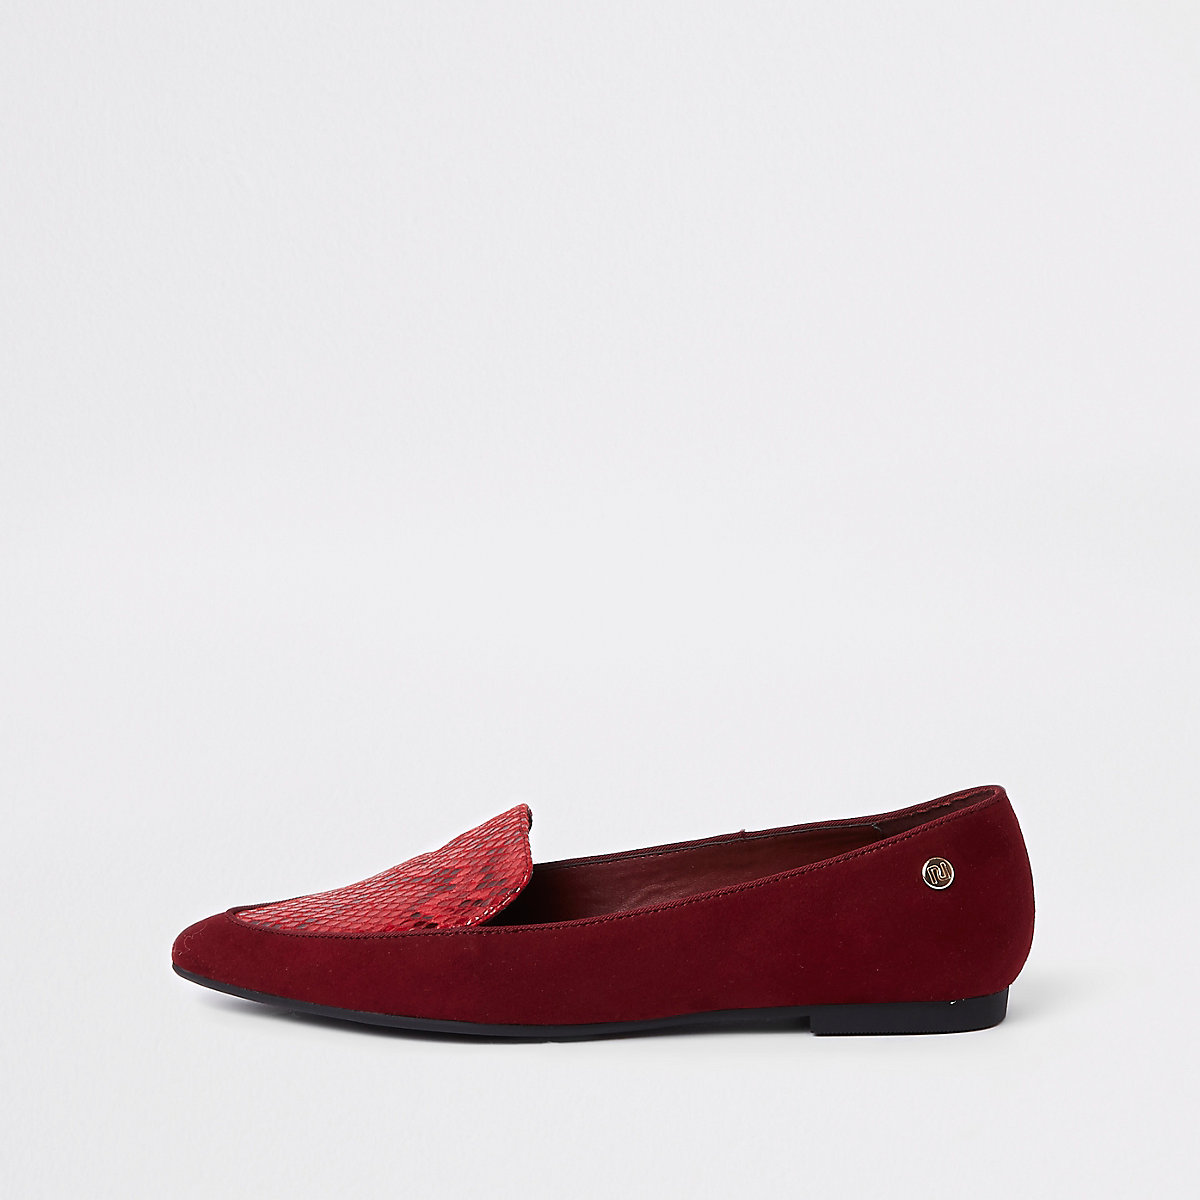 Red pointed toe croc flat shoes